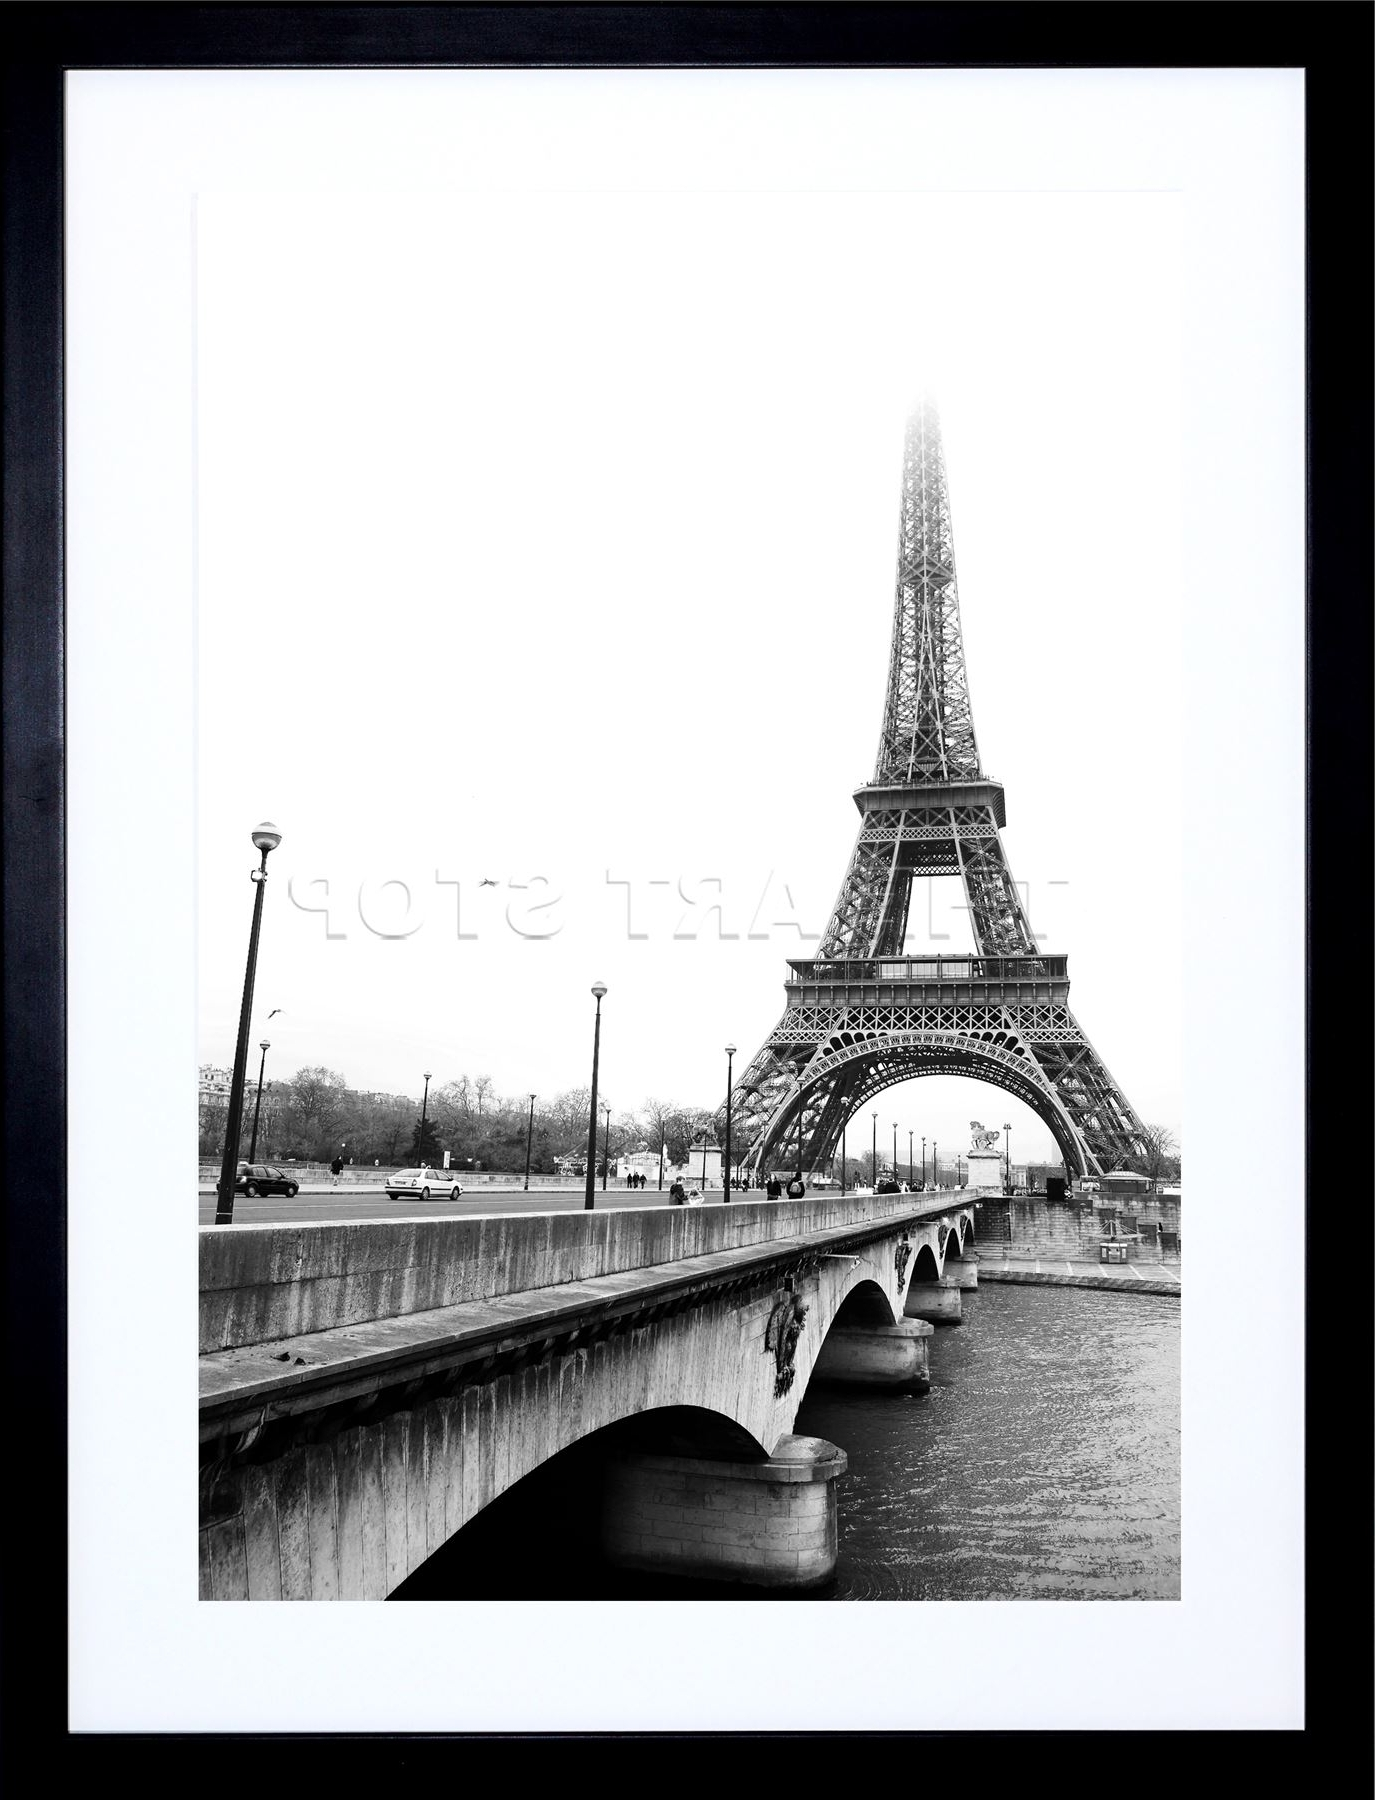 Photo Landmark Eiffel Tower Paris France Bw Frame Art Print Throughout 2018 Black And White Paris Wall Art (View 11 of 15)